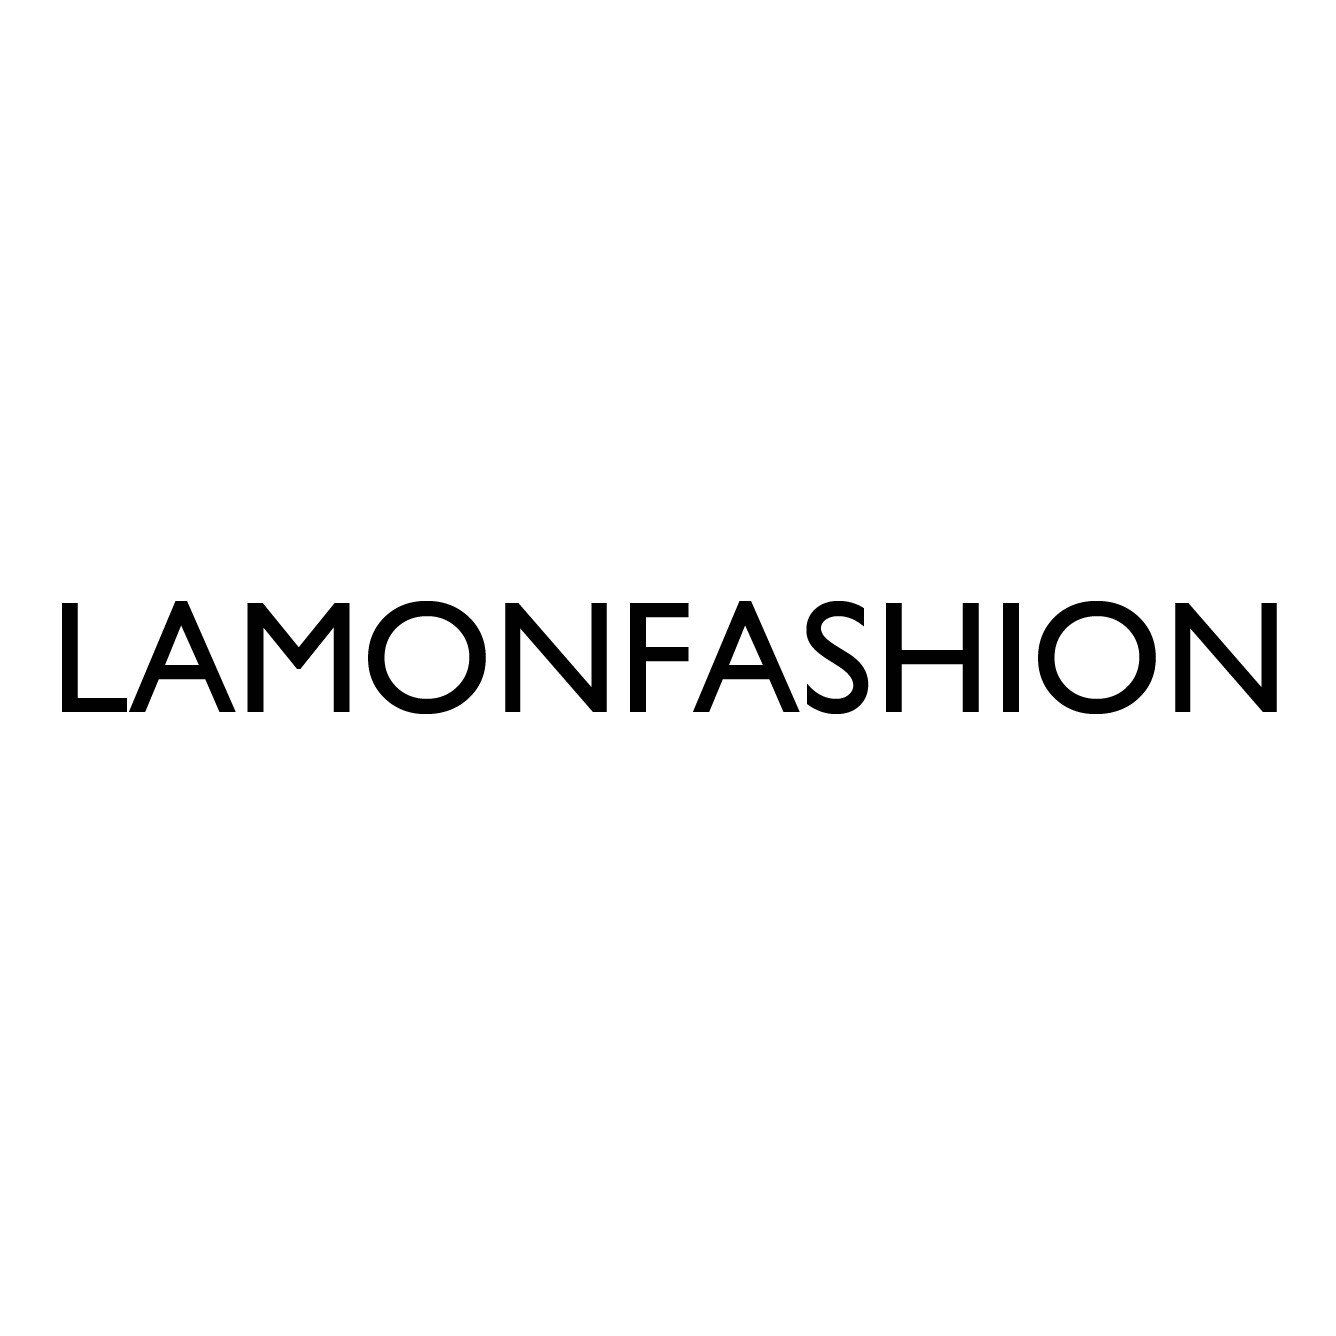 Lamonfashion